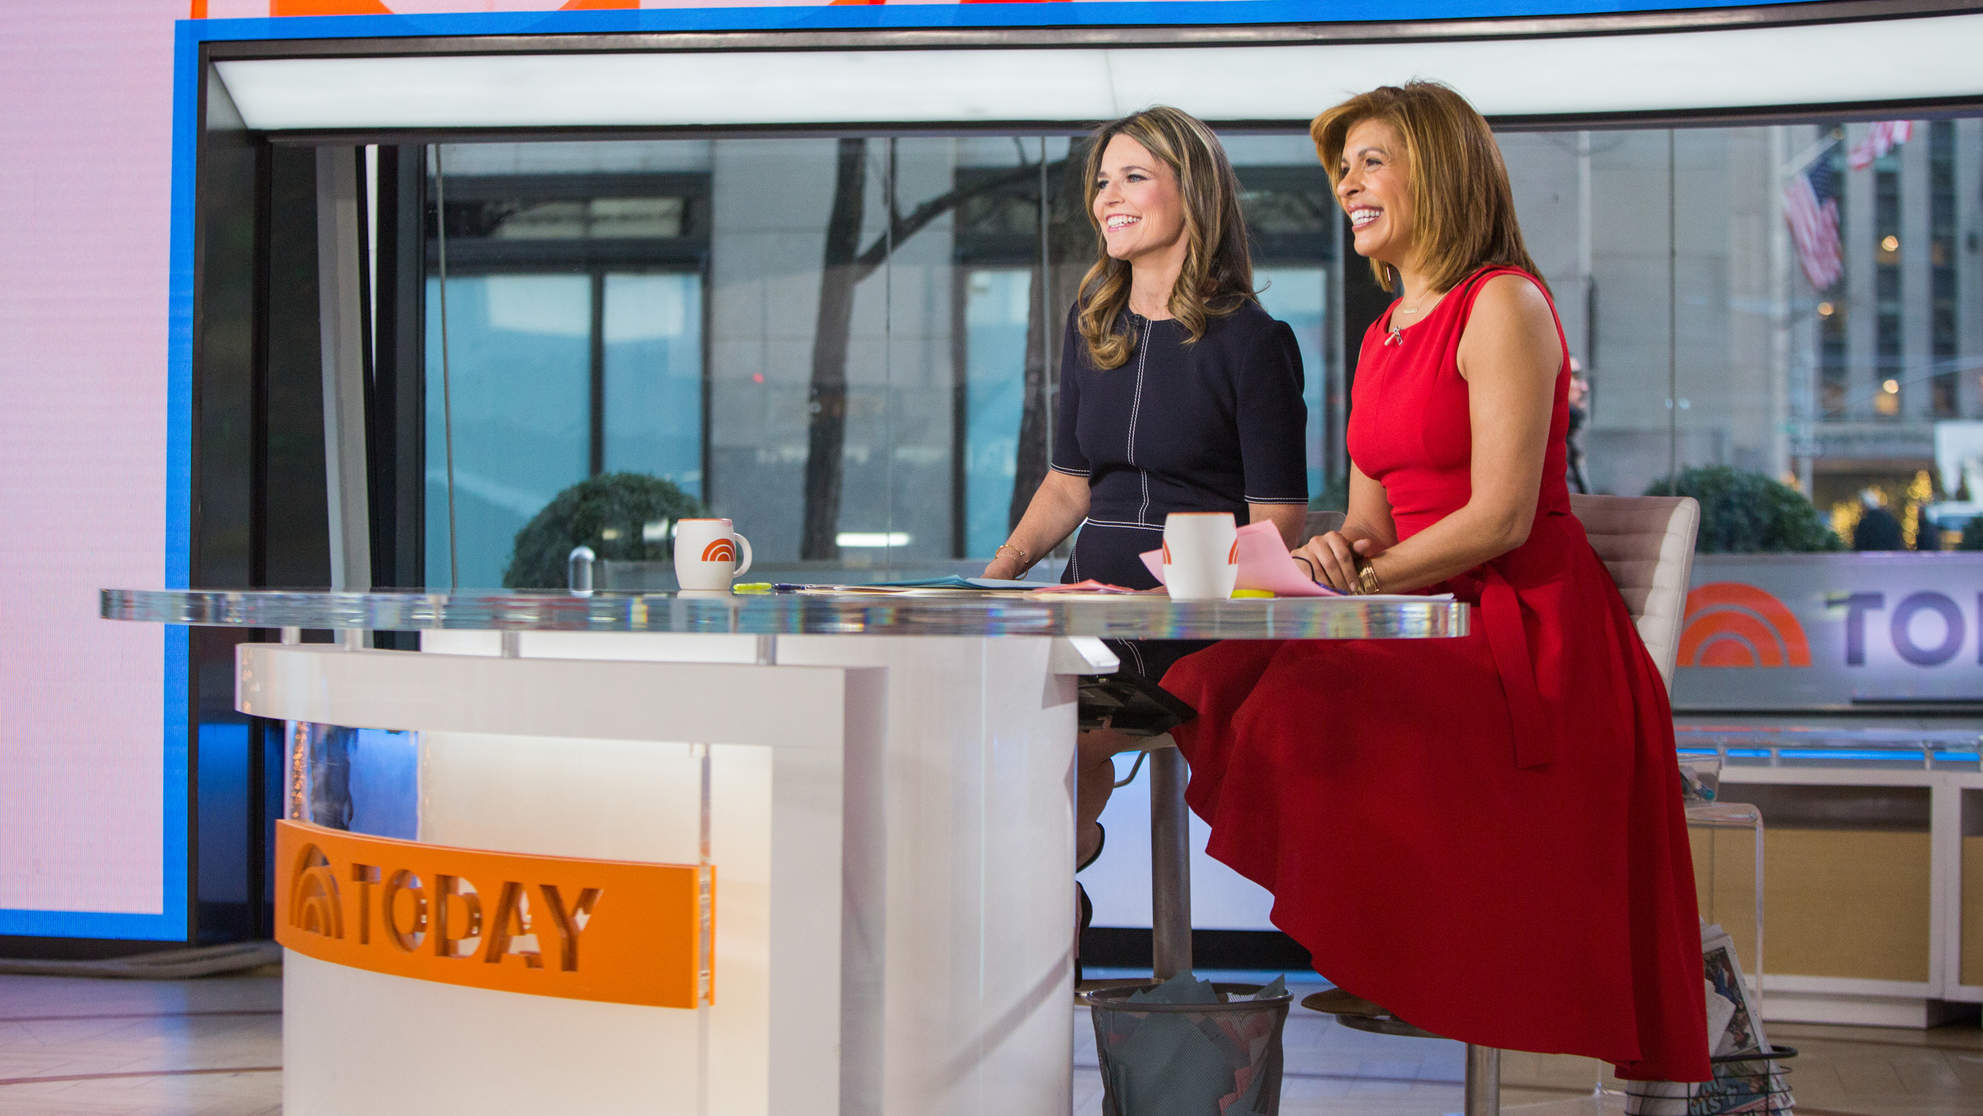 Why Hoda Kotb Is a Revolutionary Pick to Replace Matt Lauer